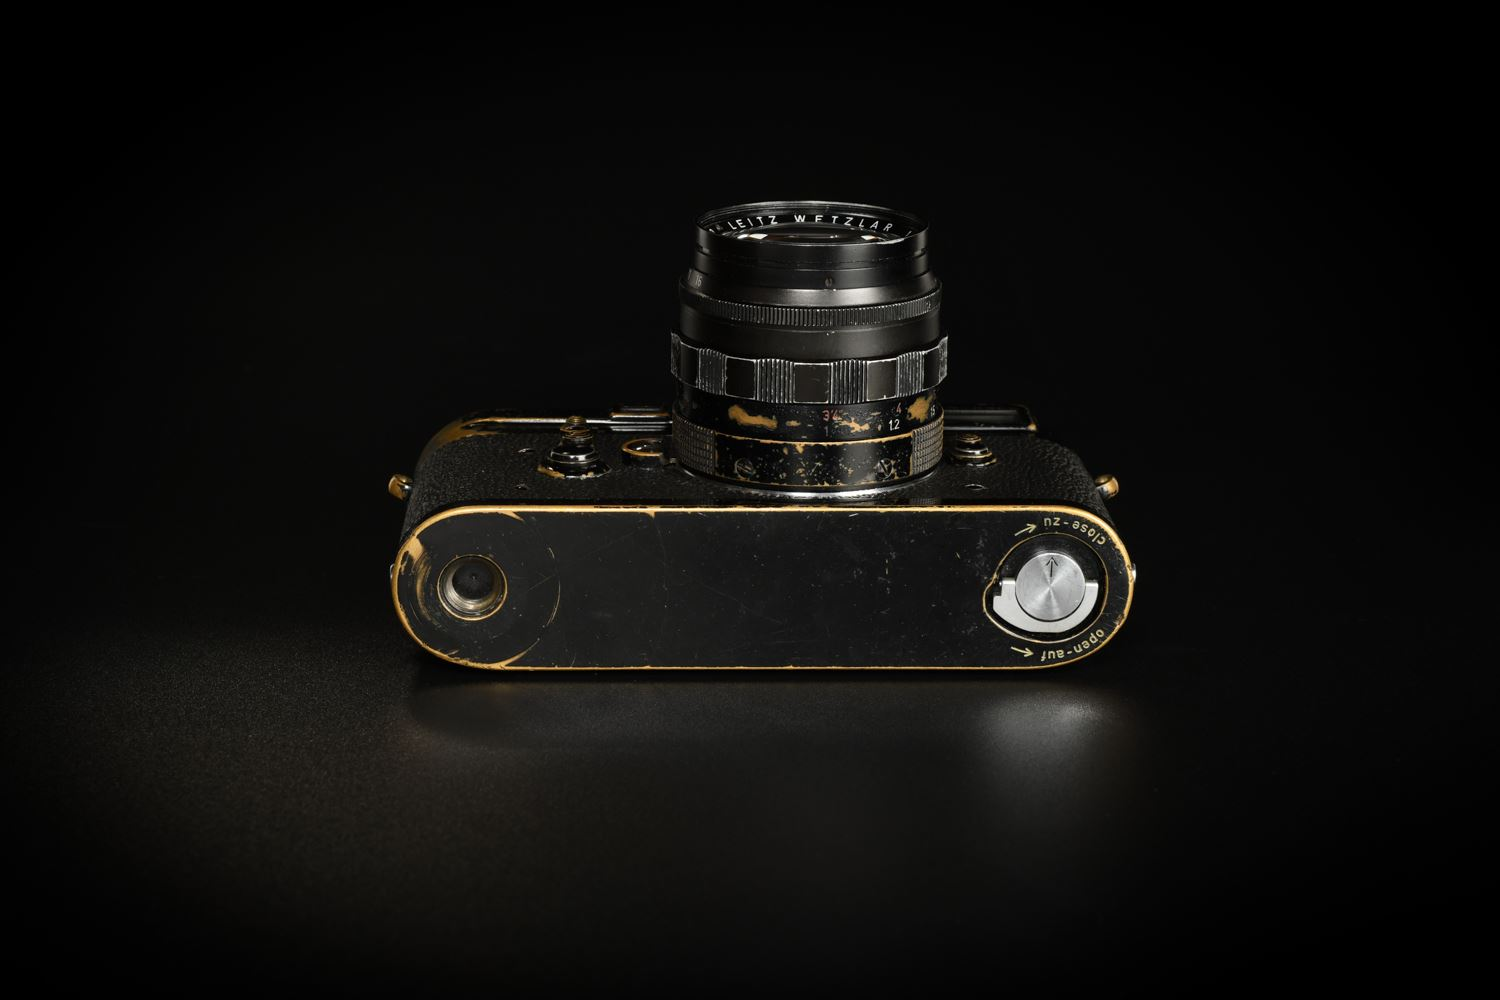 Picture of Leica M3 Original Black Paint with Summilux-M 50mm f/1.4 Ver.1 Black Paint Set